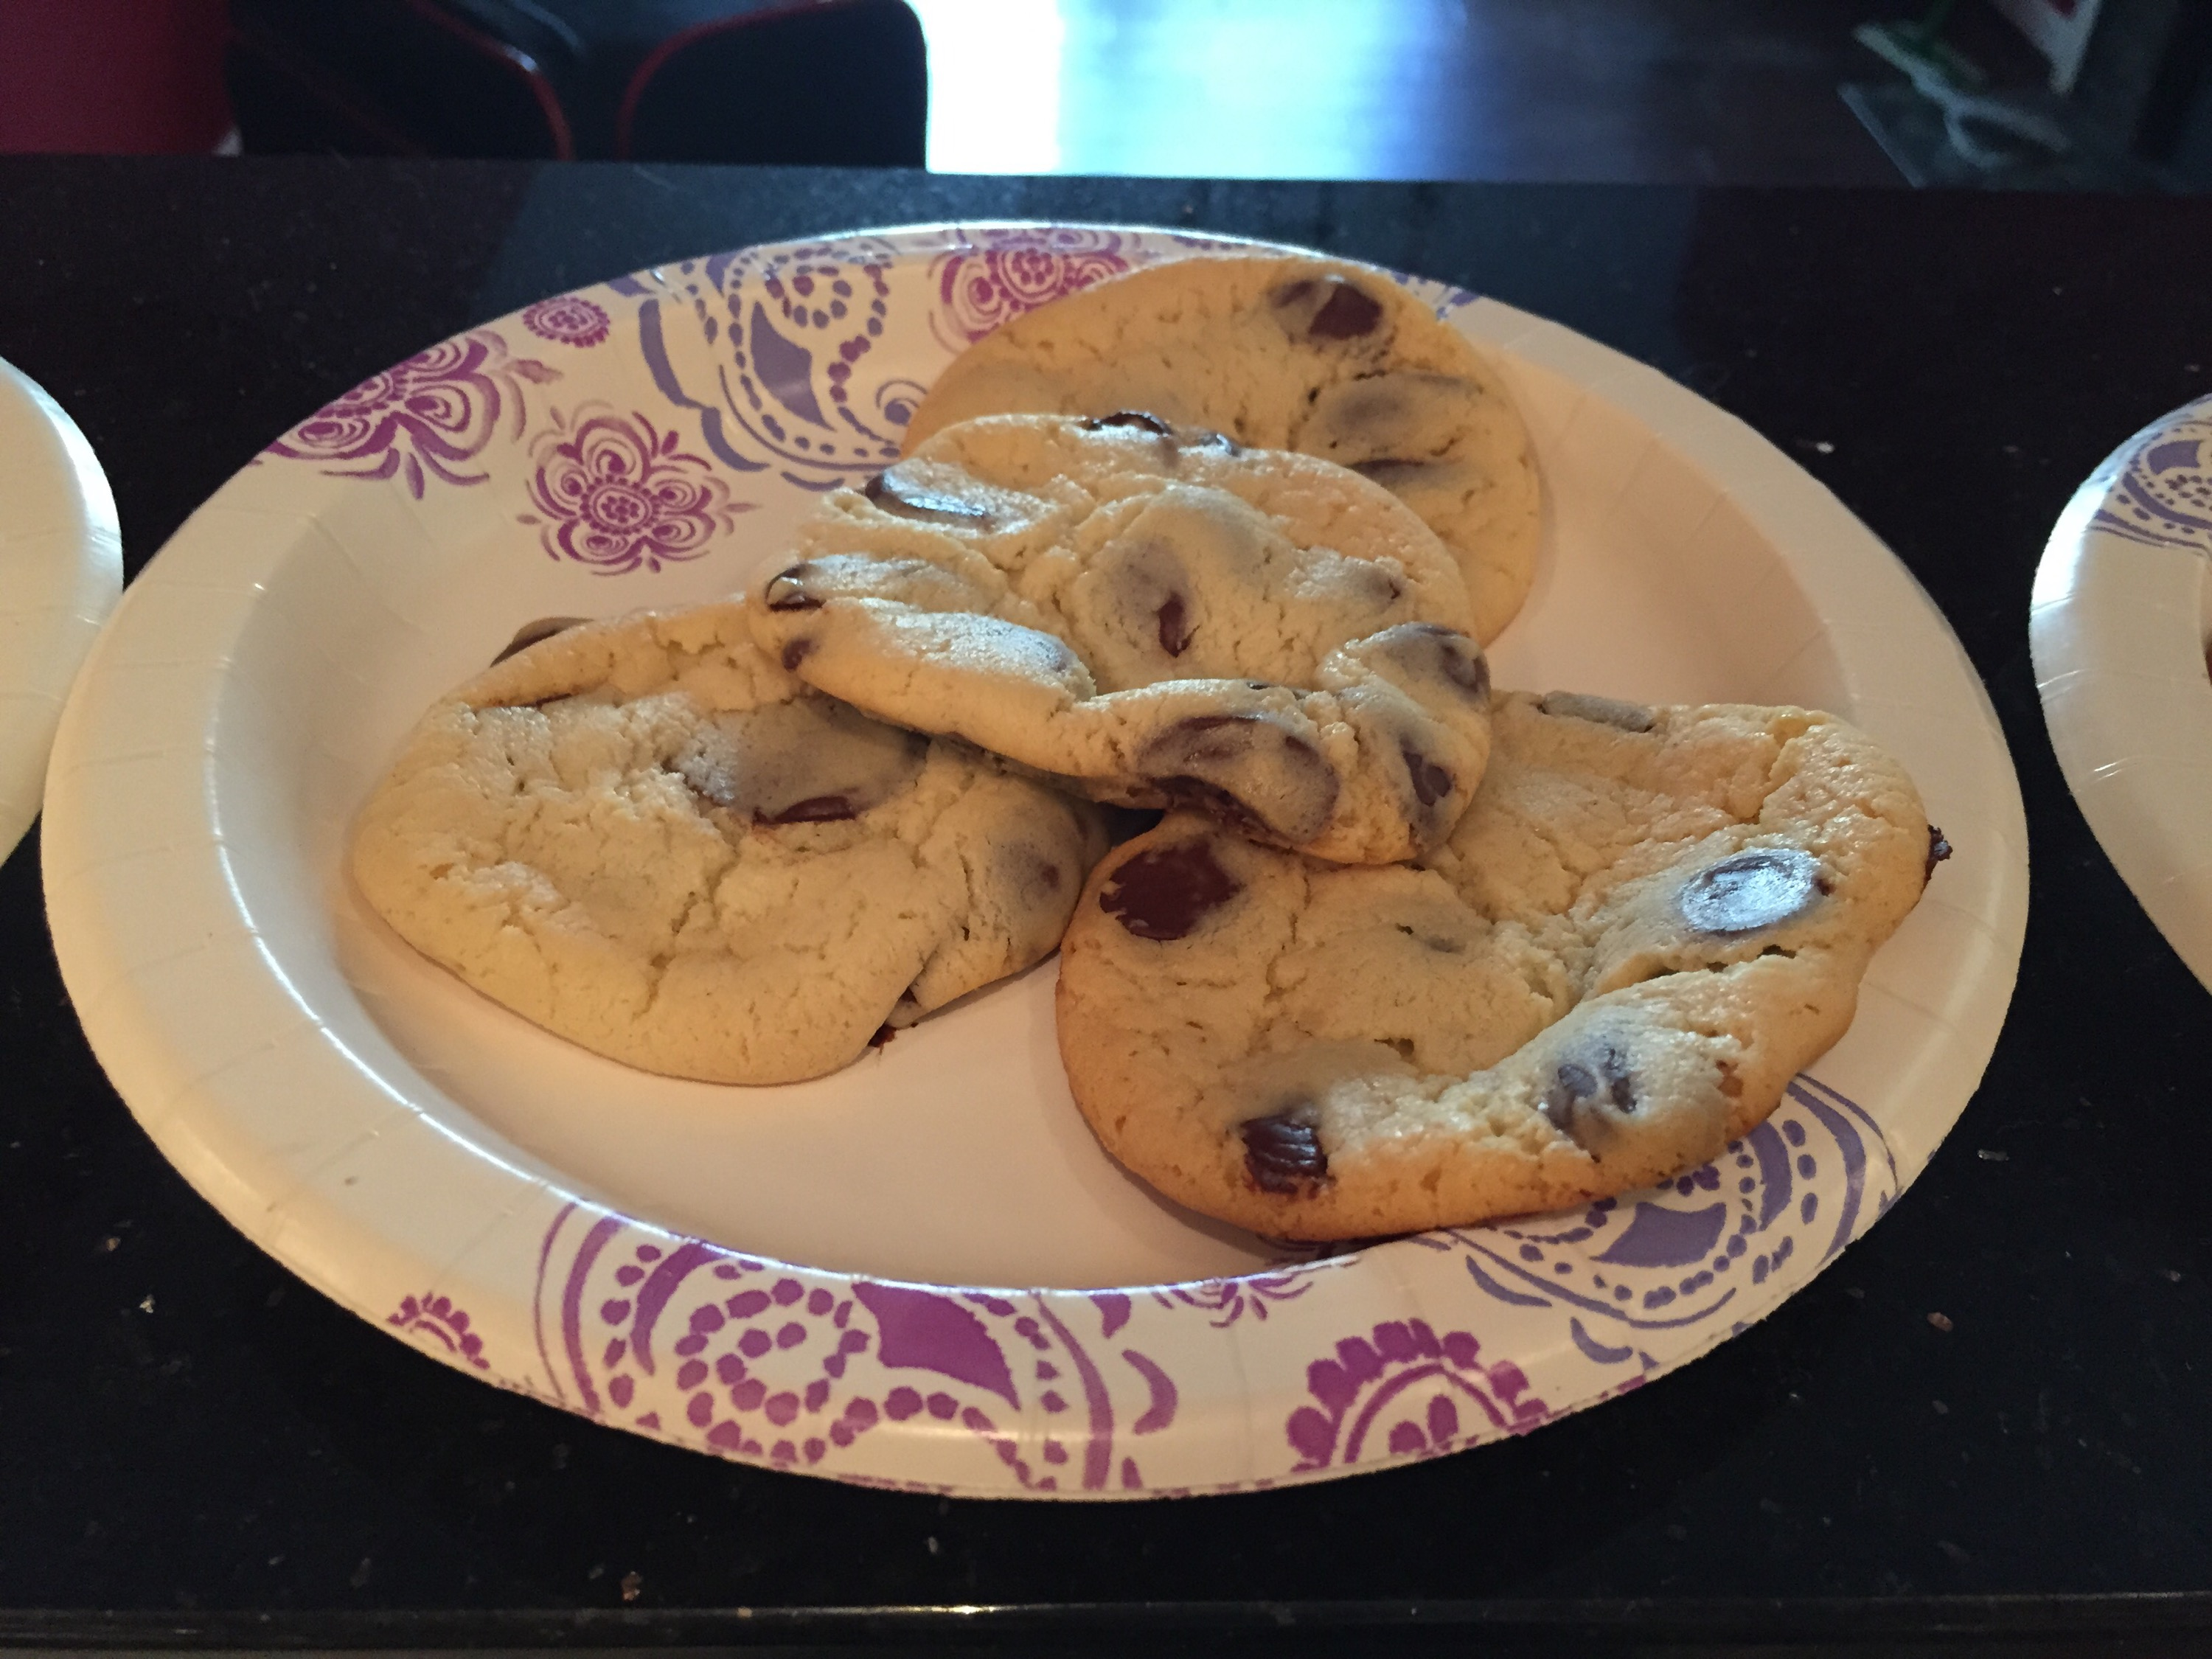 http://www.butterbaking.com/2013/01/17/condensed-milk-chocolate-chip-cookies/